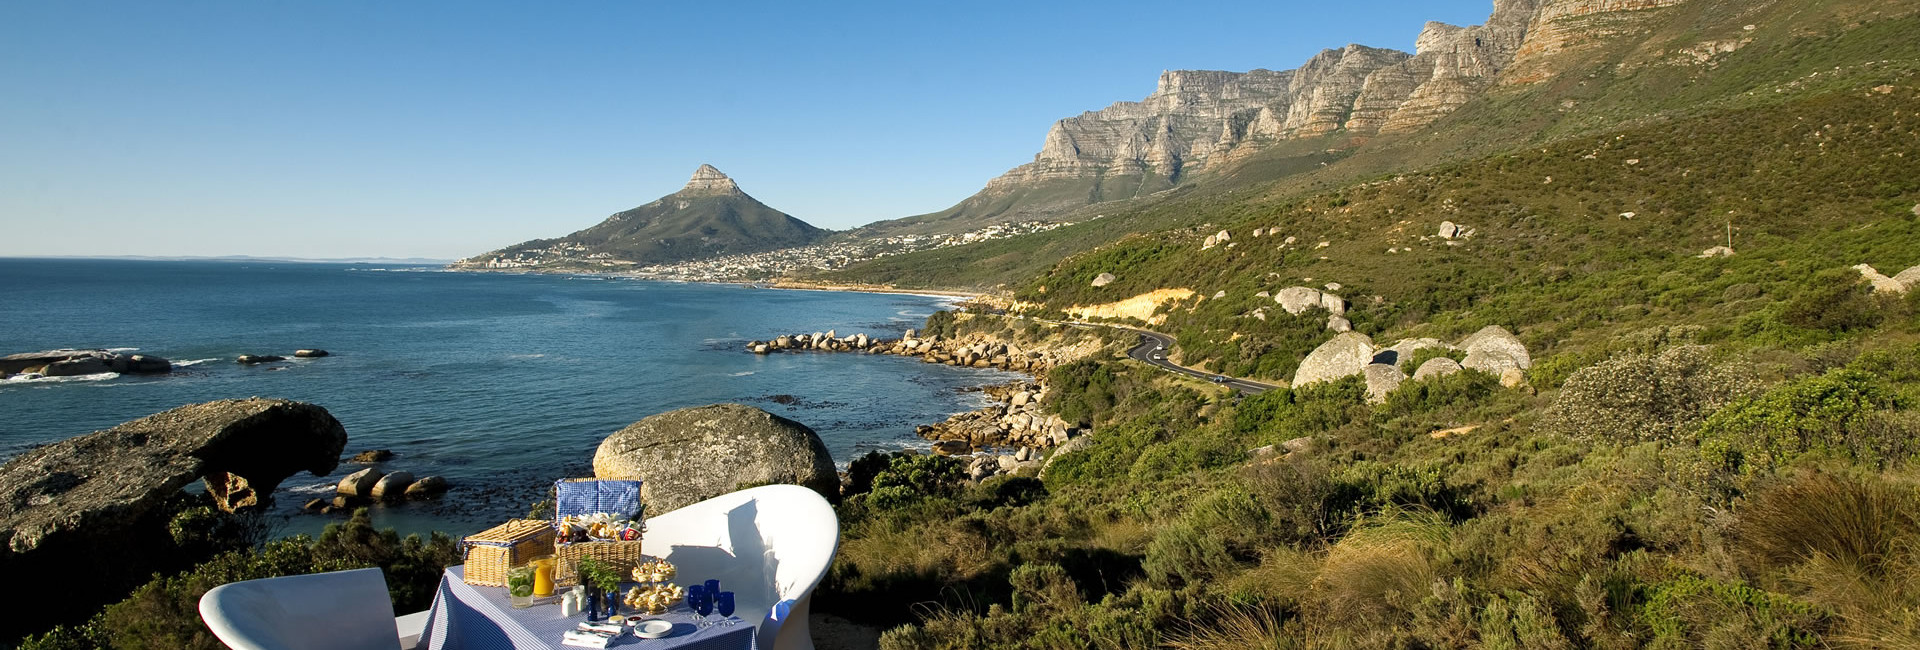 12 Apostles Iconic Cape Town Hotel